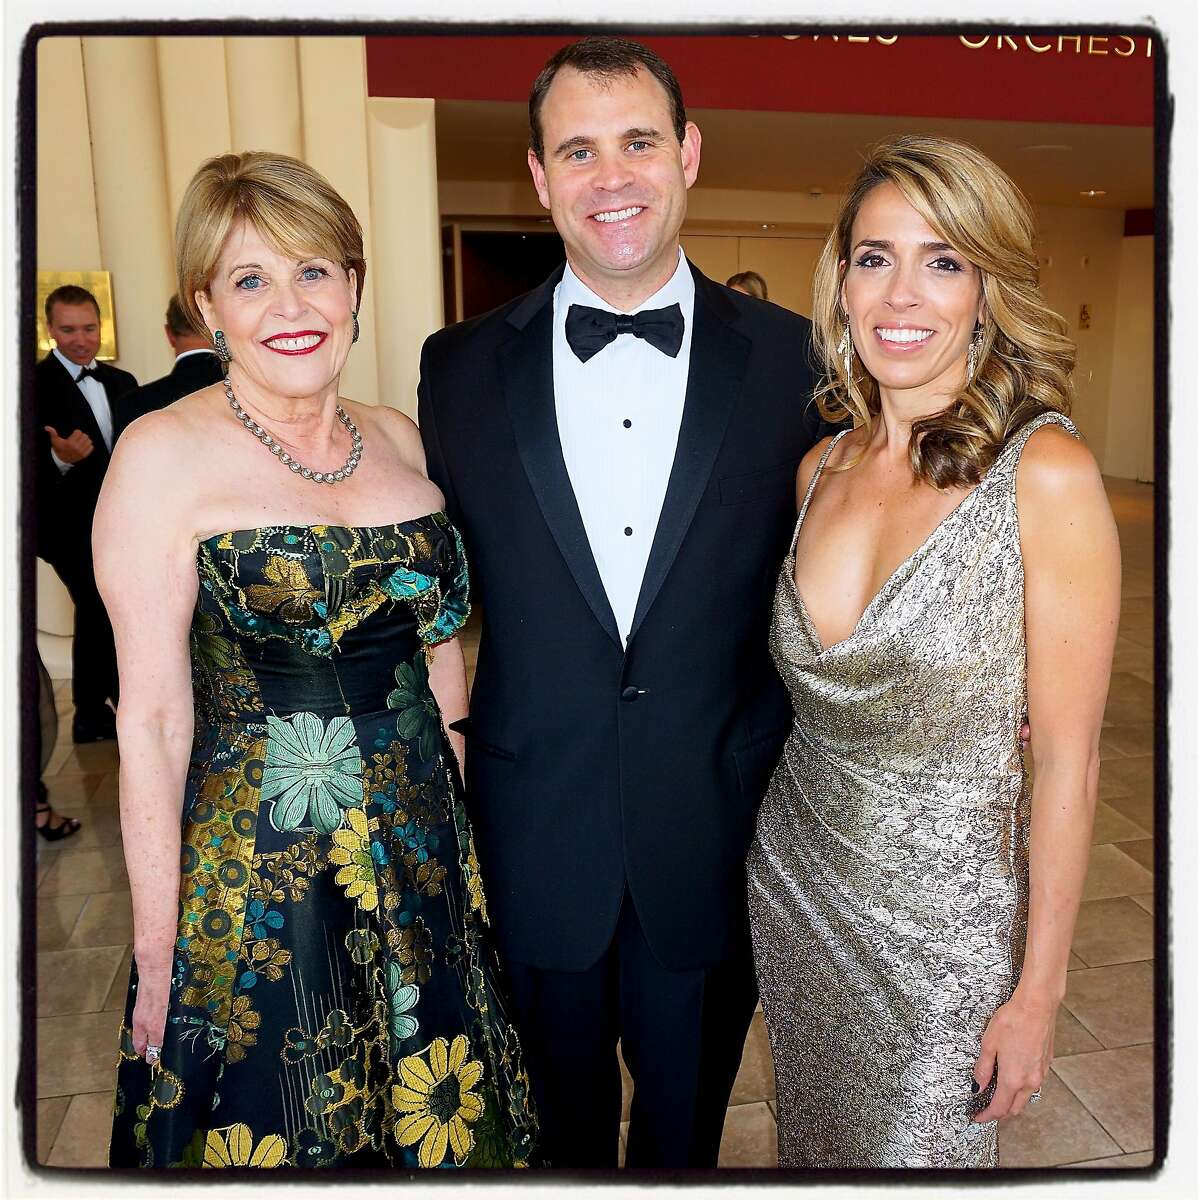 SFS Gala committee member Dagmar Dolby (left) with her son, David Dolby and his wife, committee member Natasha Dolby, at Davies. Sept 2016.